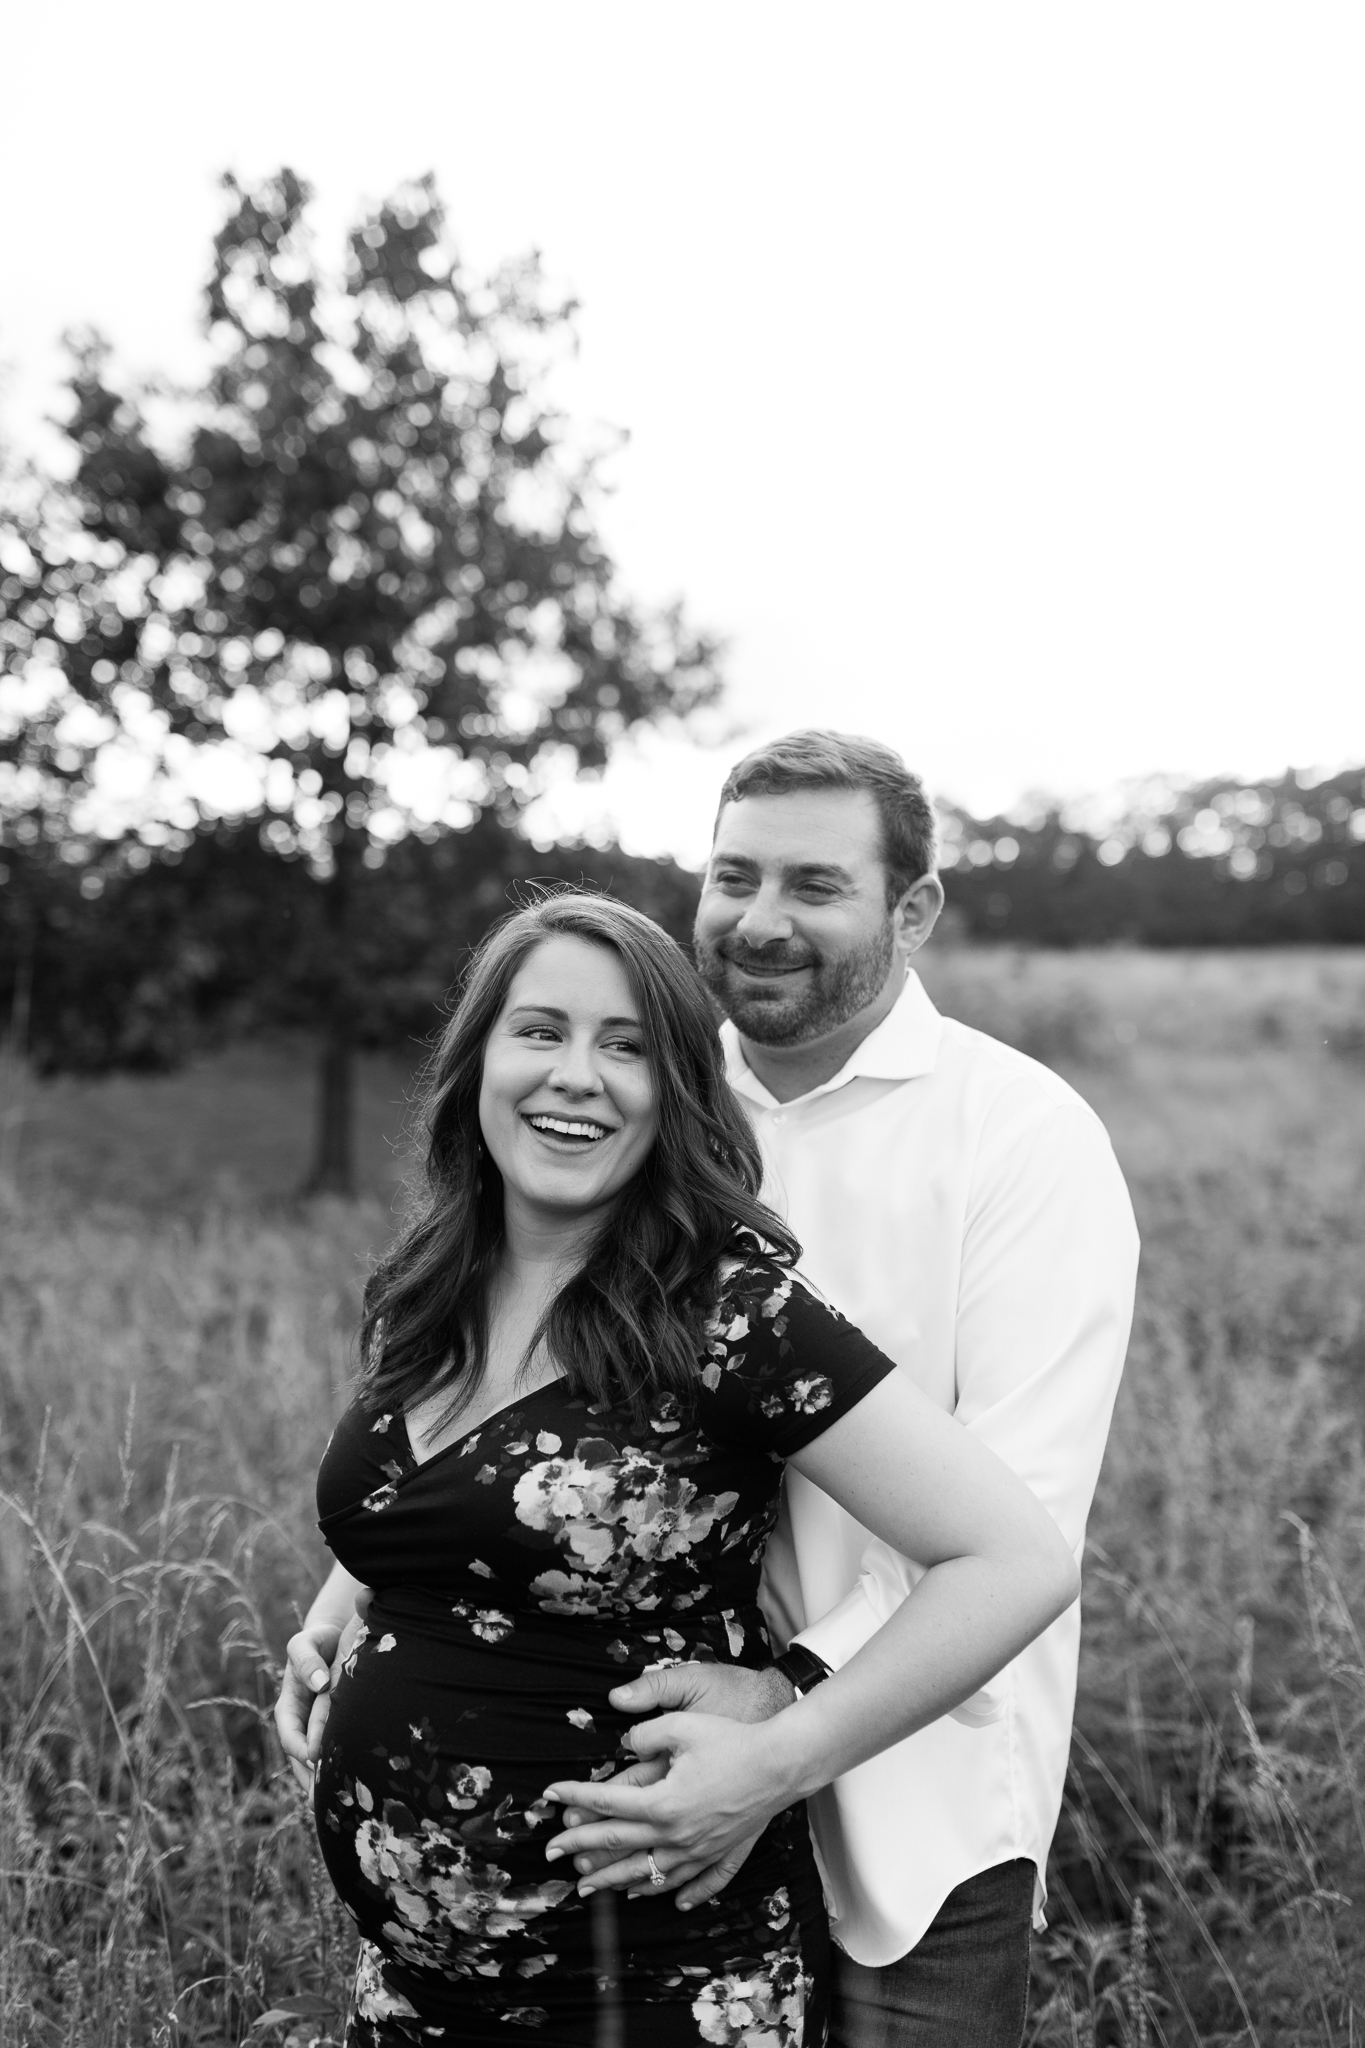 Black and white photo of pregnant couple laughing in a field, Rebecca Clair Photography, candid maternity photos in Johnson County, Kansas City maternity photographer